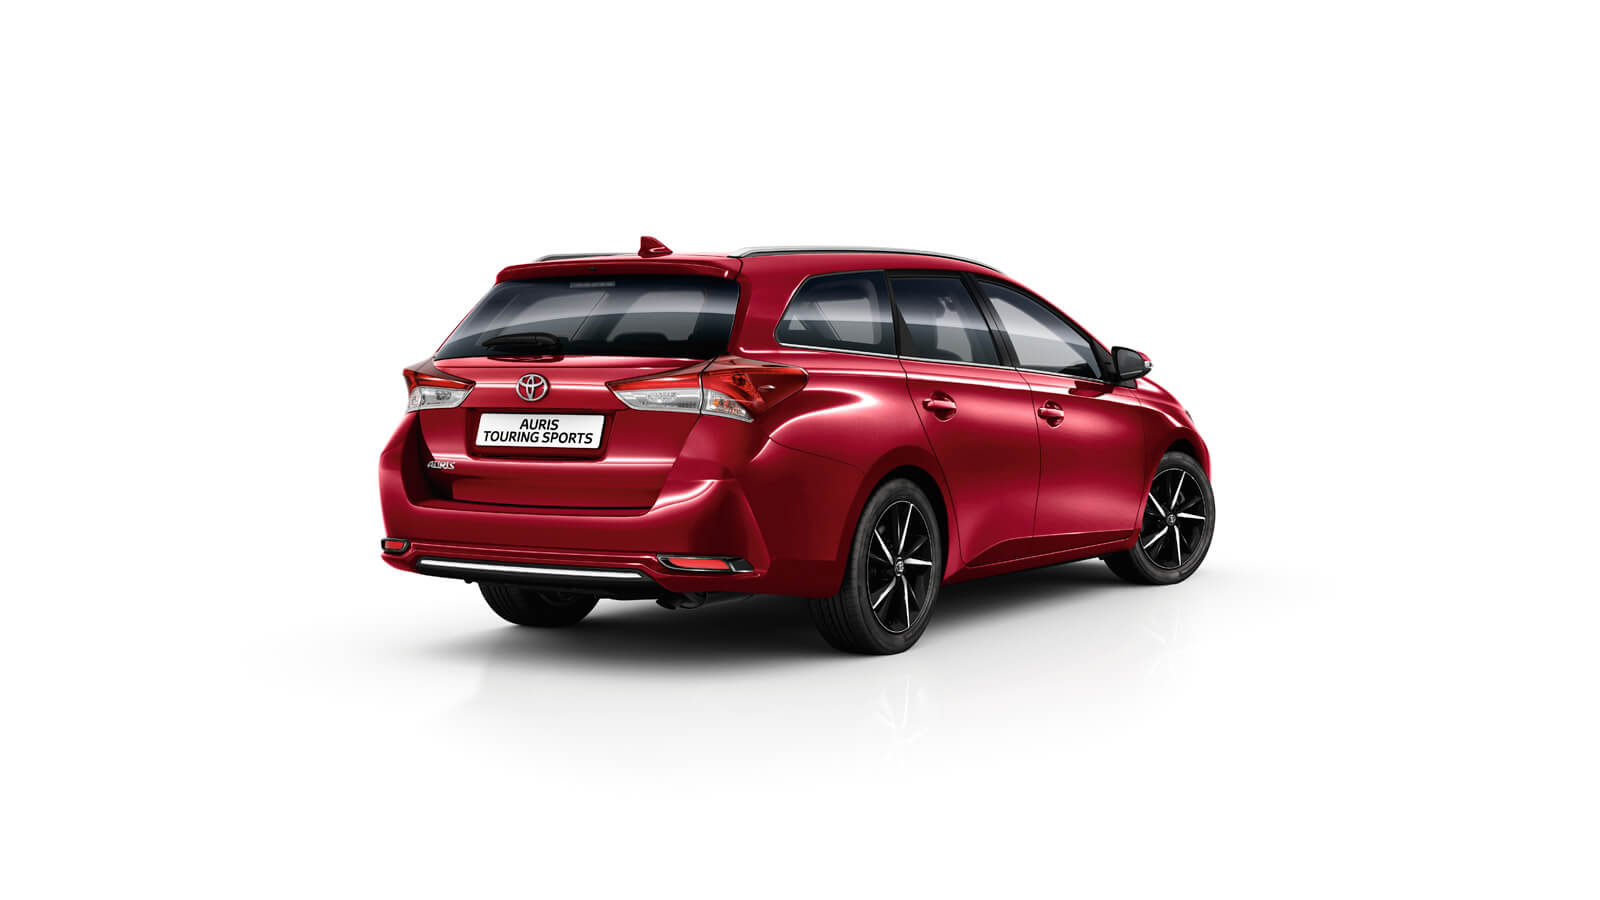 auris touring sports models features burrows barnsley. Black Bedroom Furniture Sets. Home Design Ideas